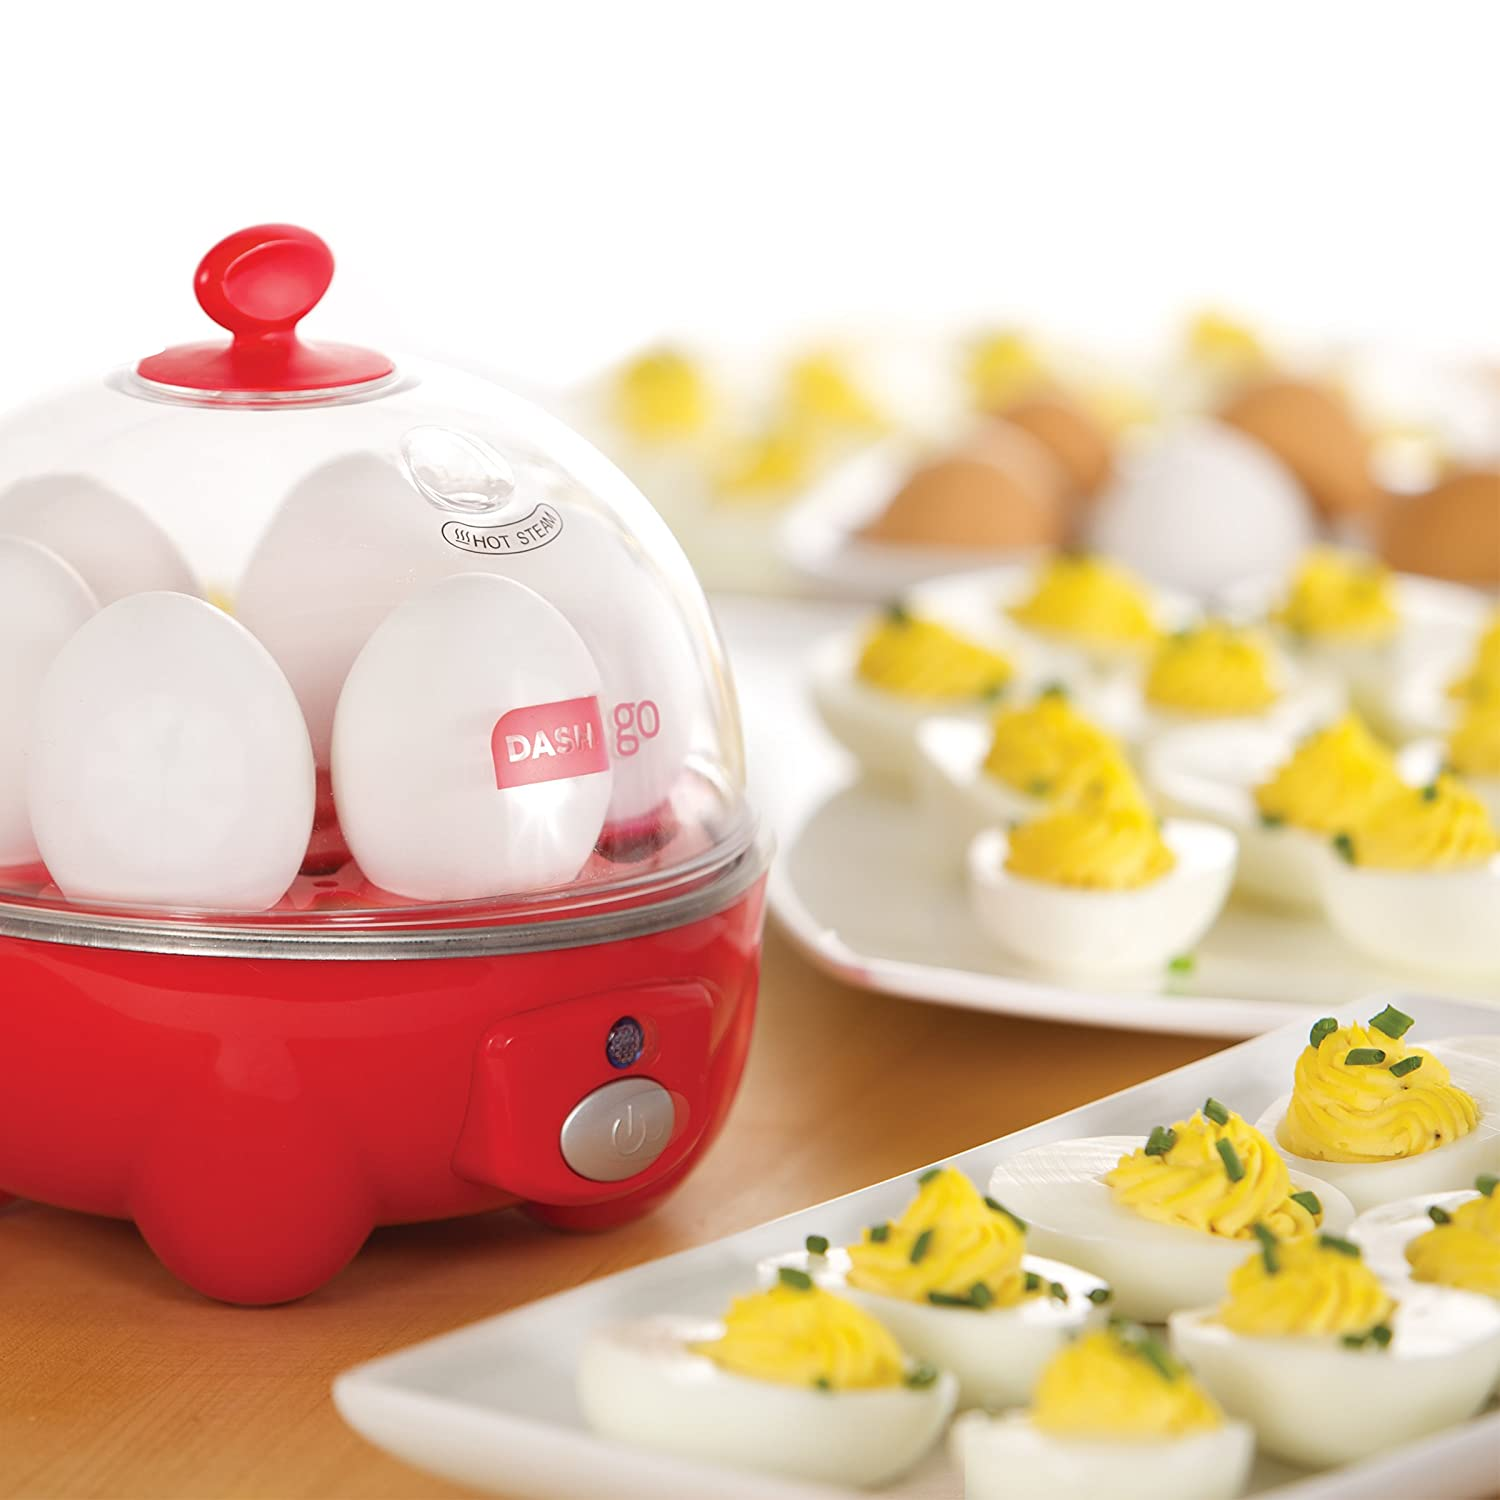 dashgo best egg cooker